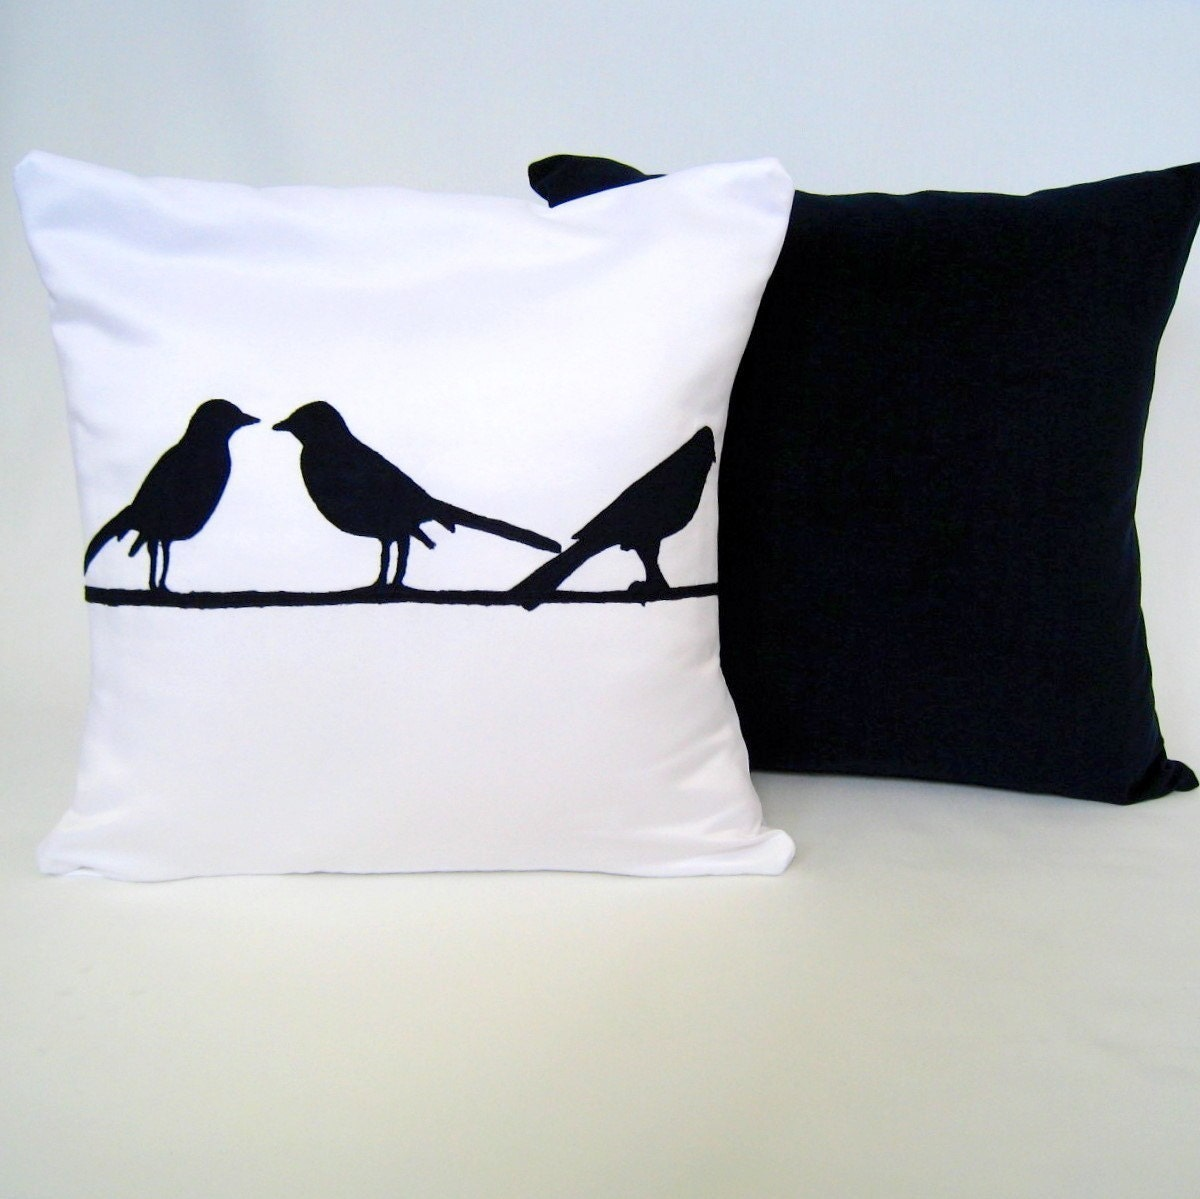 Three Birds on a Branch Chic and Modern White Pillow Cover